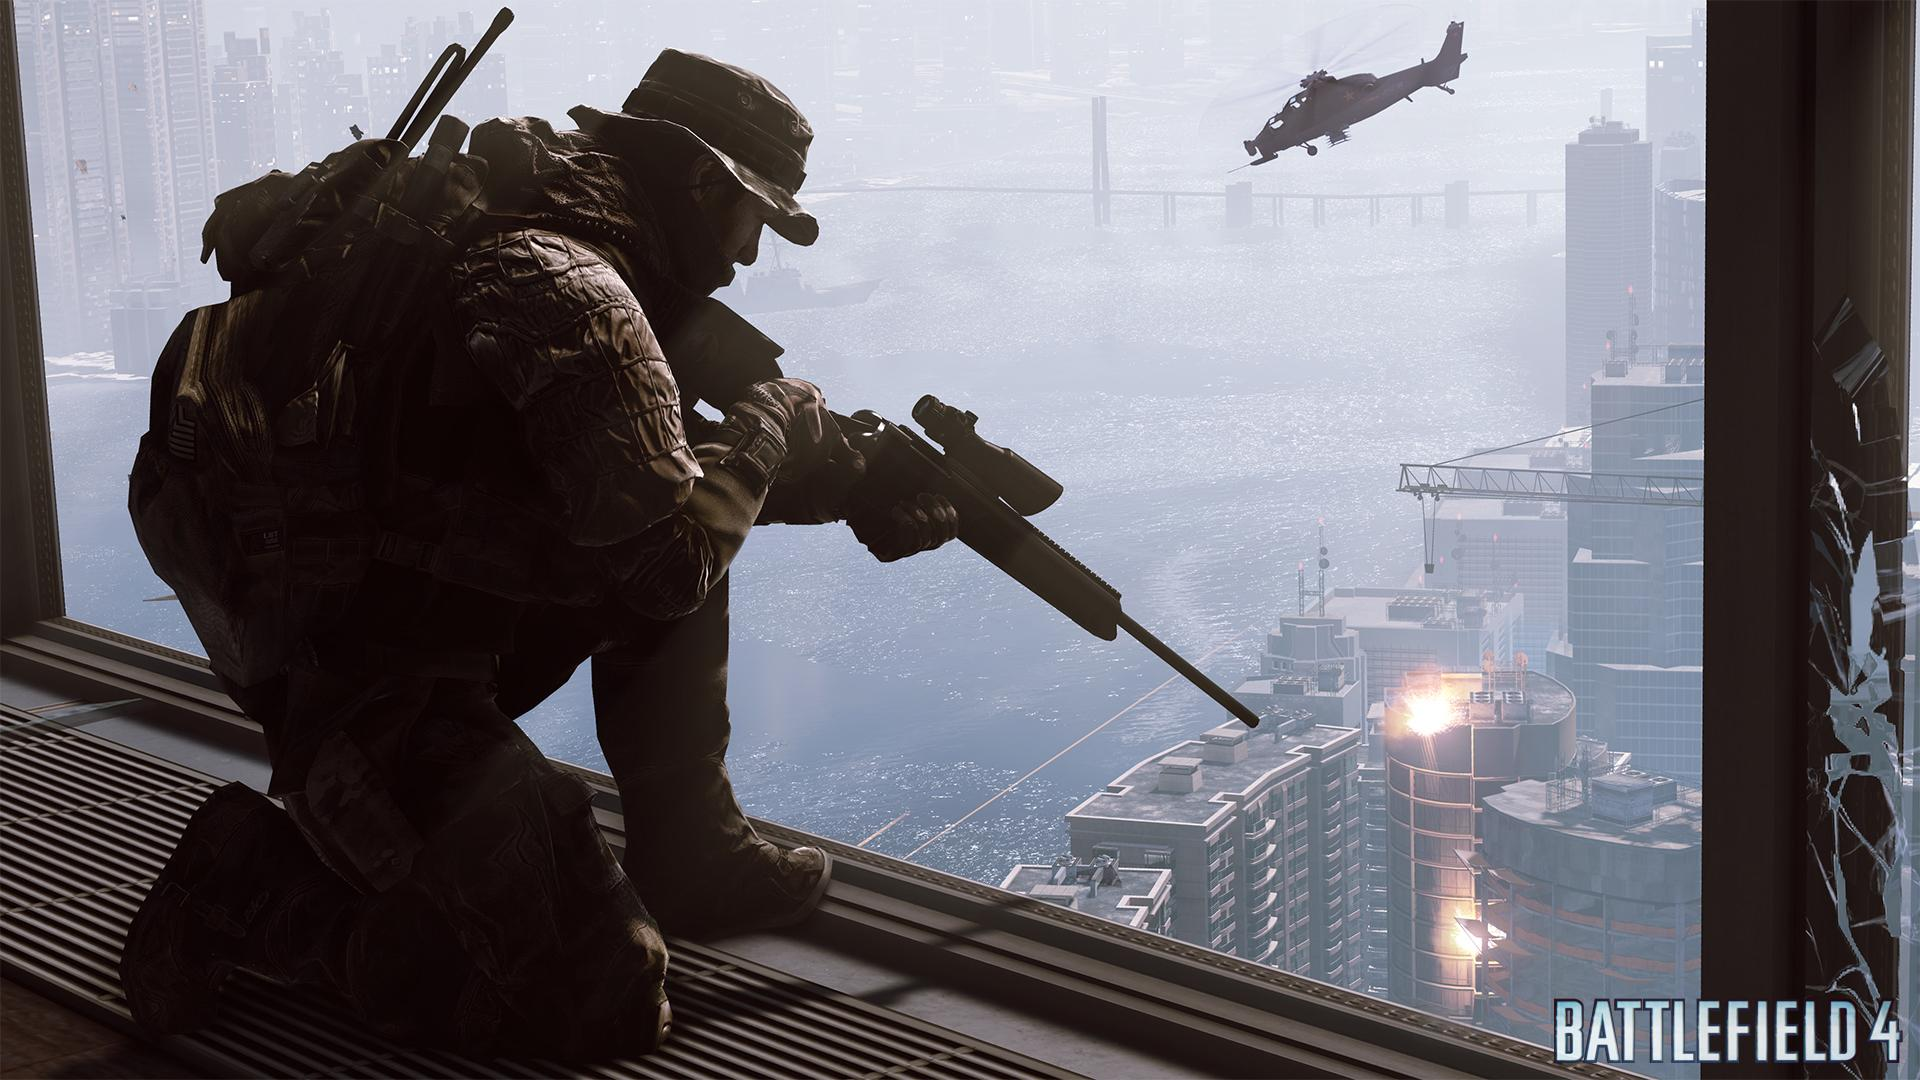 Battlefield 4 Recon sniping